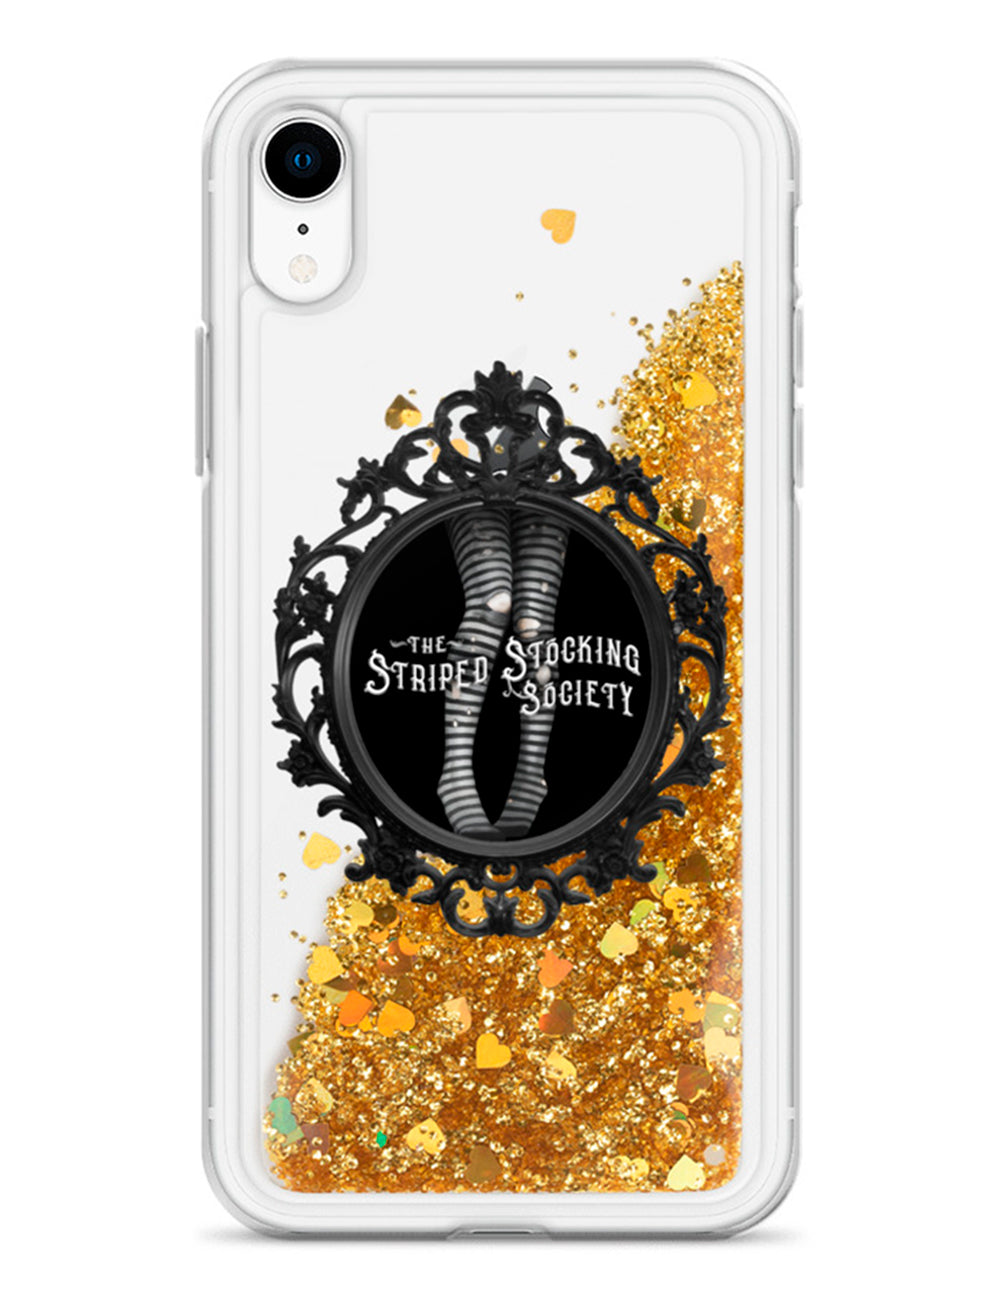 Striped Stocking Society Liquid Glitter iPhone Case - The Asylum Emporium